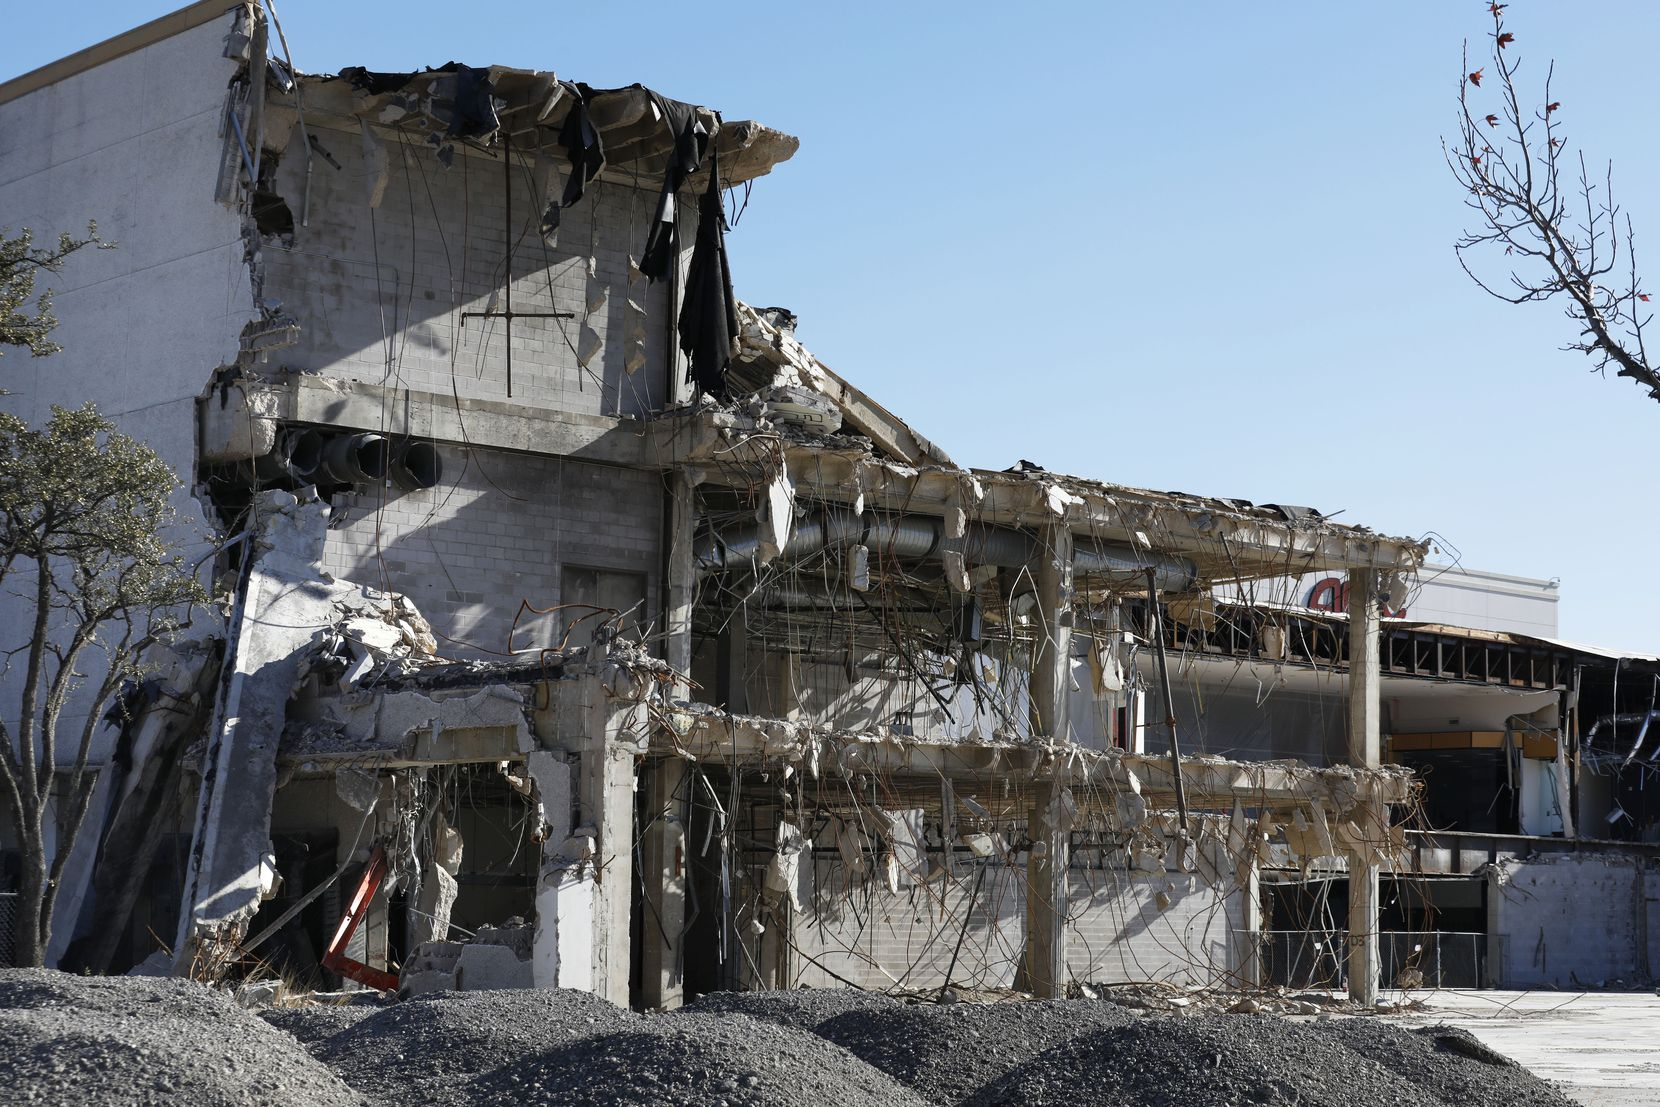 Valley View mall sat partially demolished for more than a year before crews knocked down the old buildings.